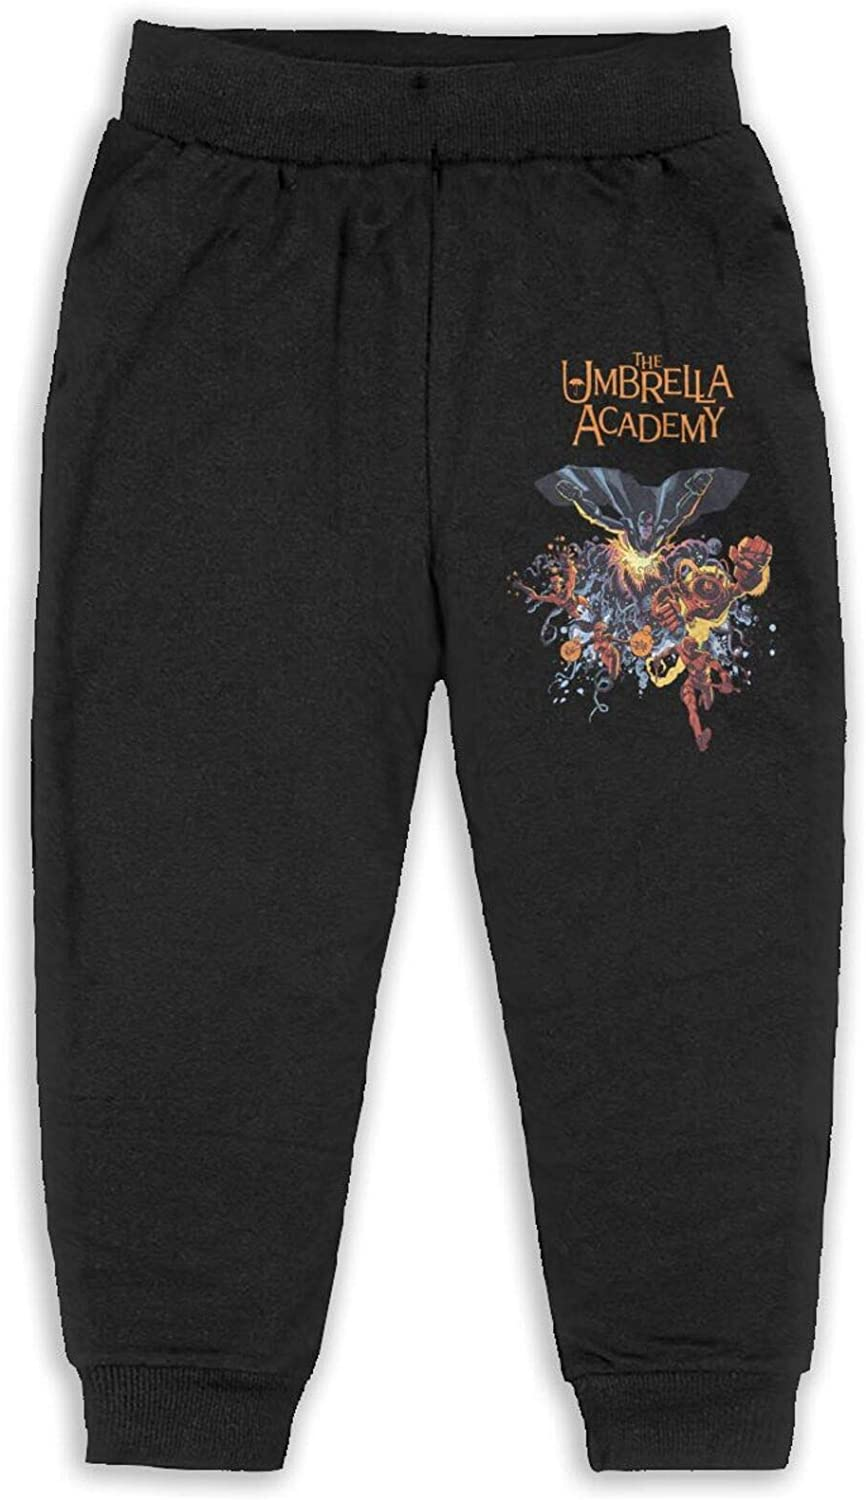 The Umbrella Academy Children 2-6 Years Old Boys and Girls Unisex Sports Pants Casual Cotton Comfort